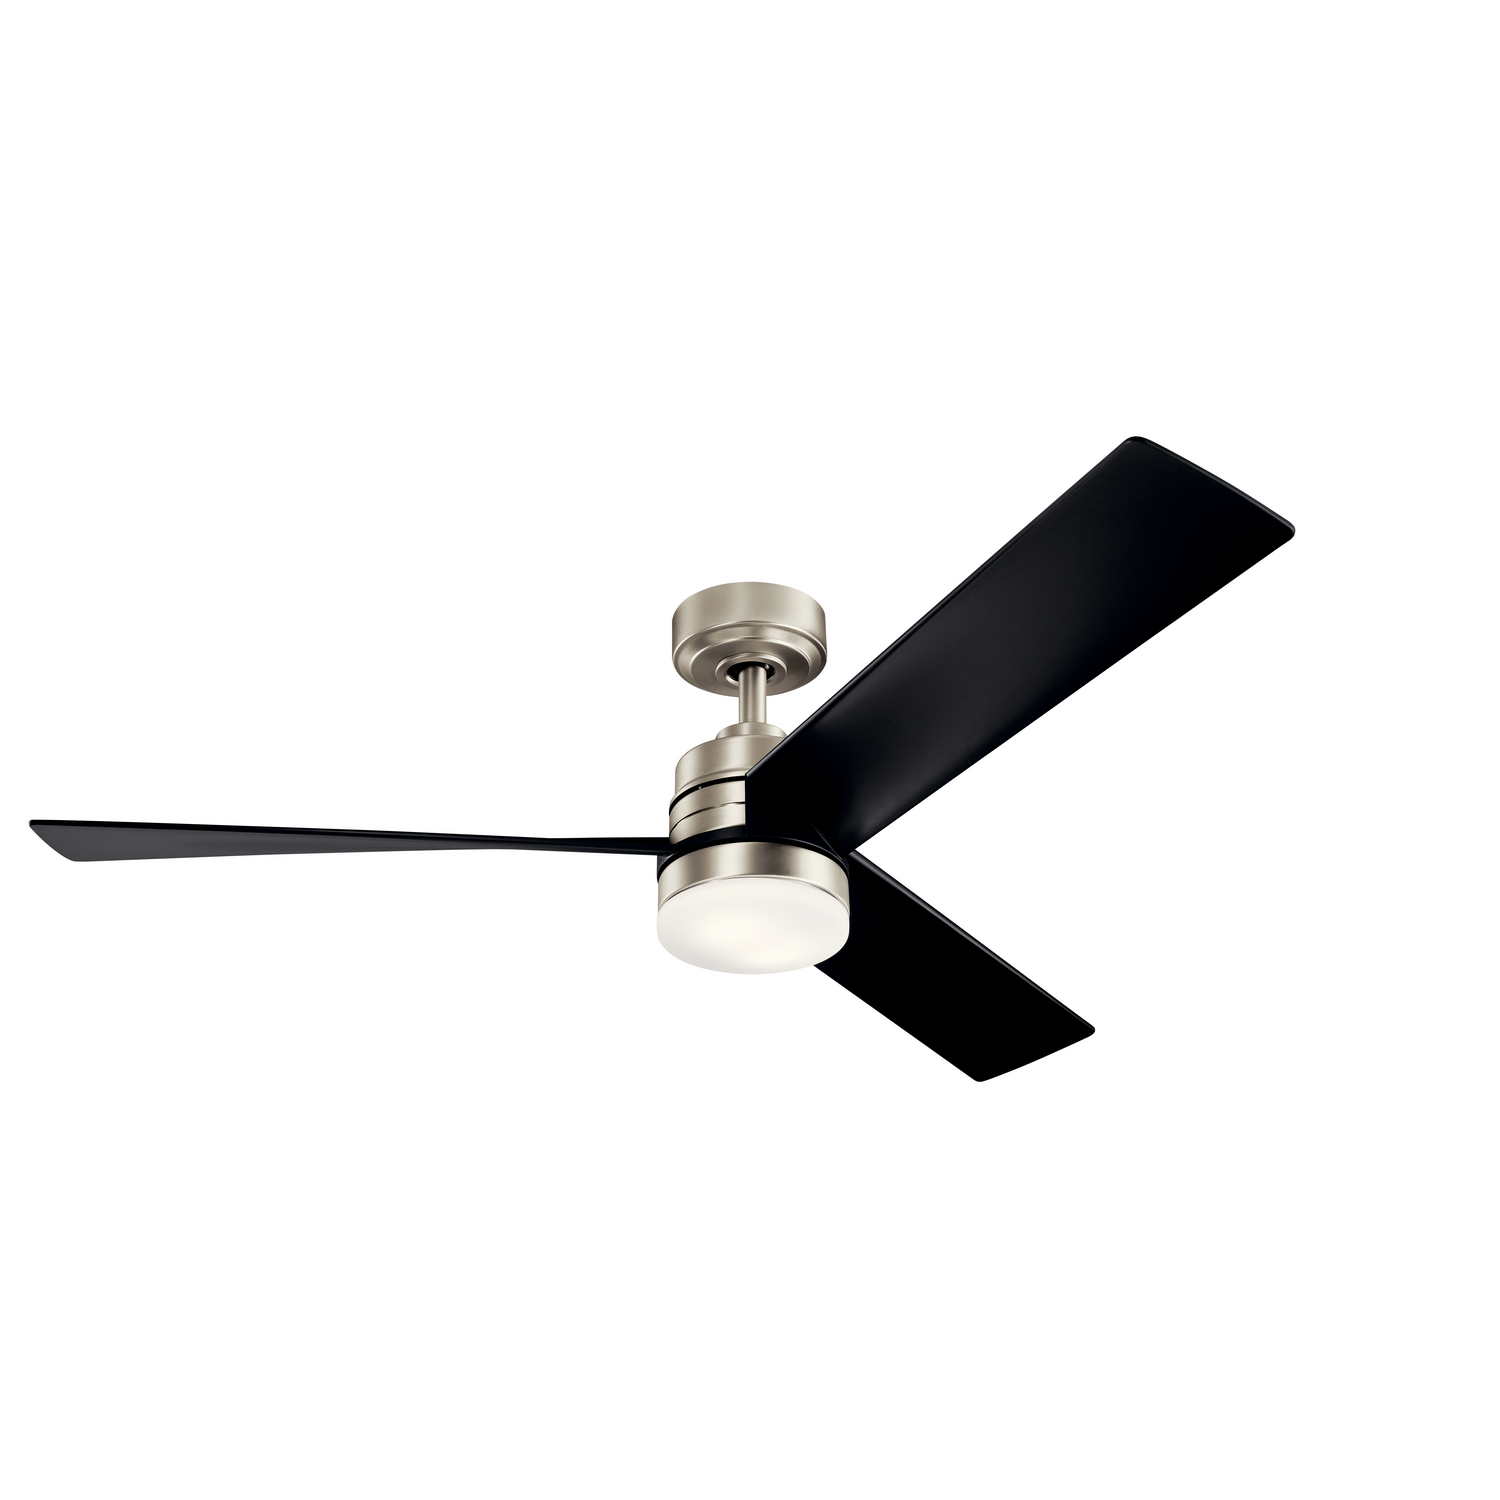 52 inchCeiling Fan from the Spyn collection by Kichler 300275NI